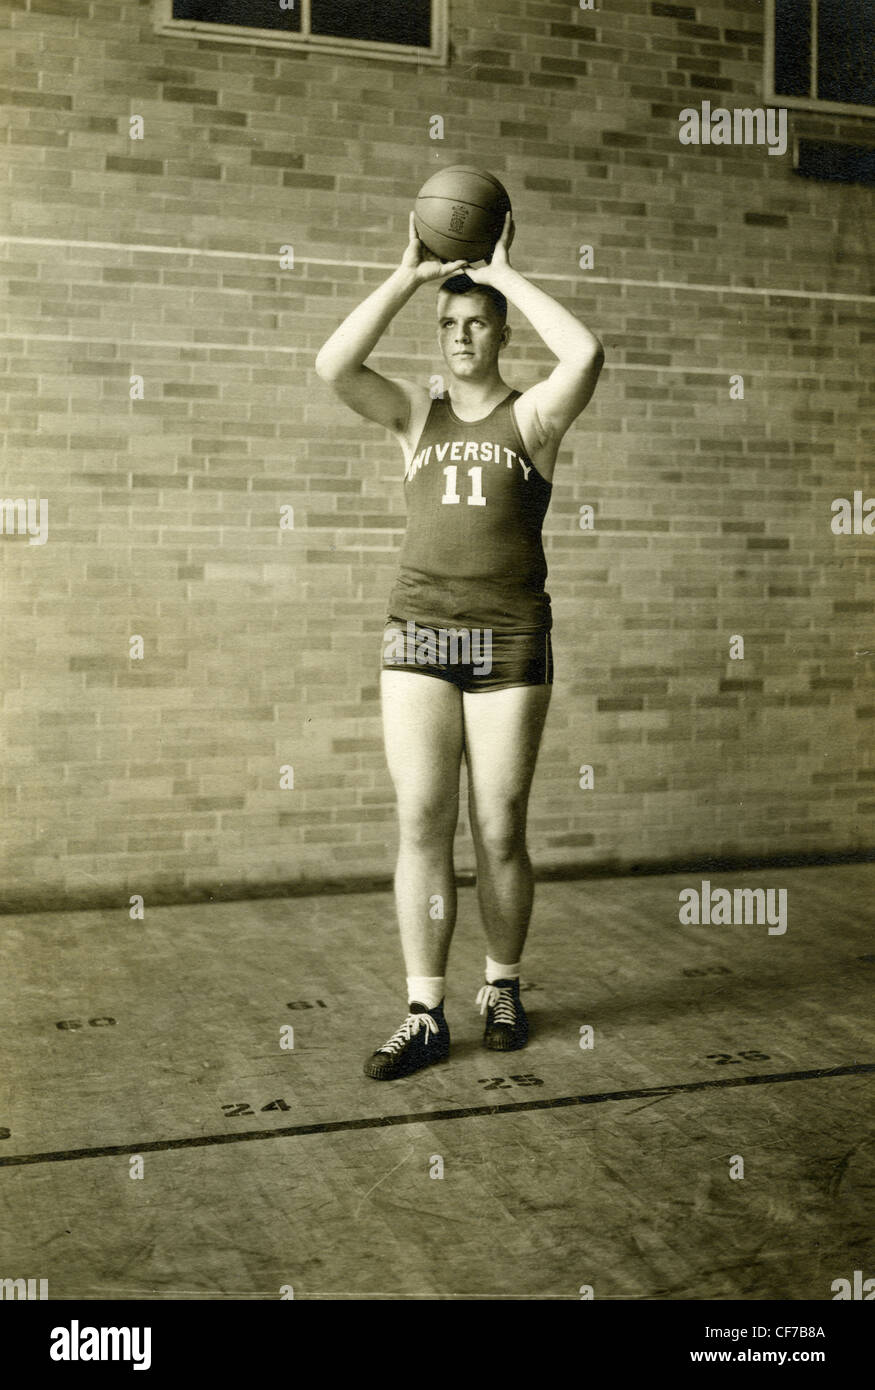 University basketball player holding basketball during portrait in 1945 or 1946 sports player 1940s - Stock Image